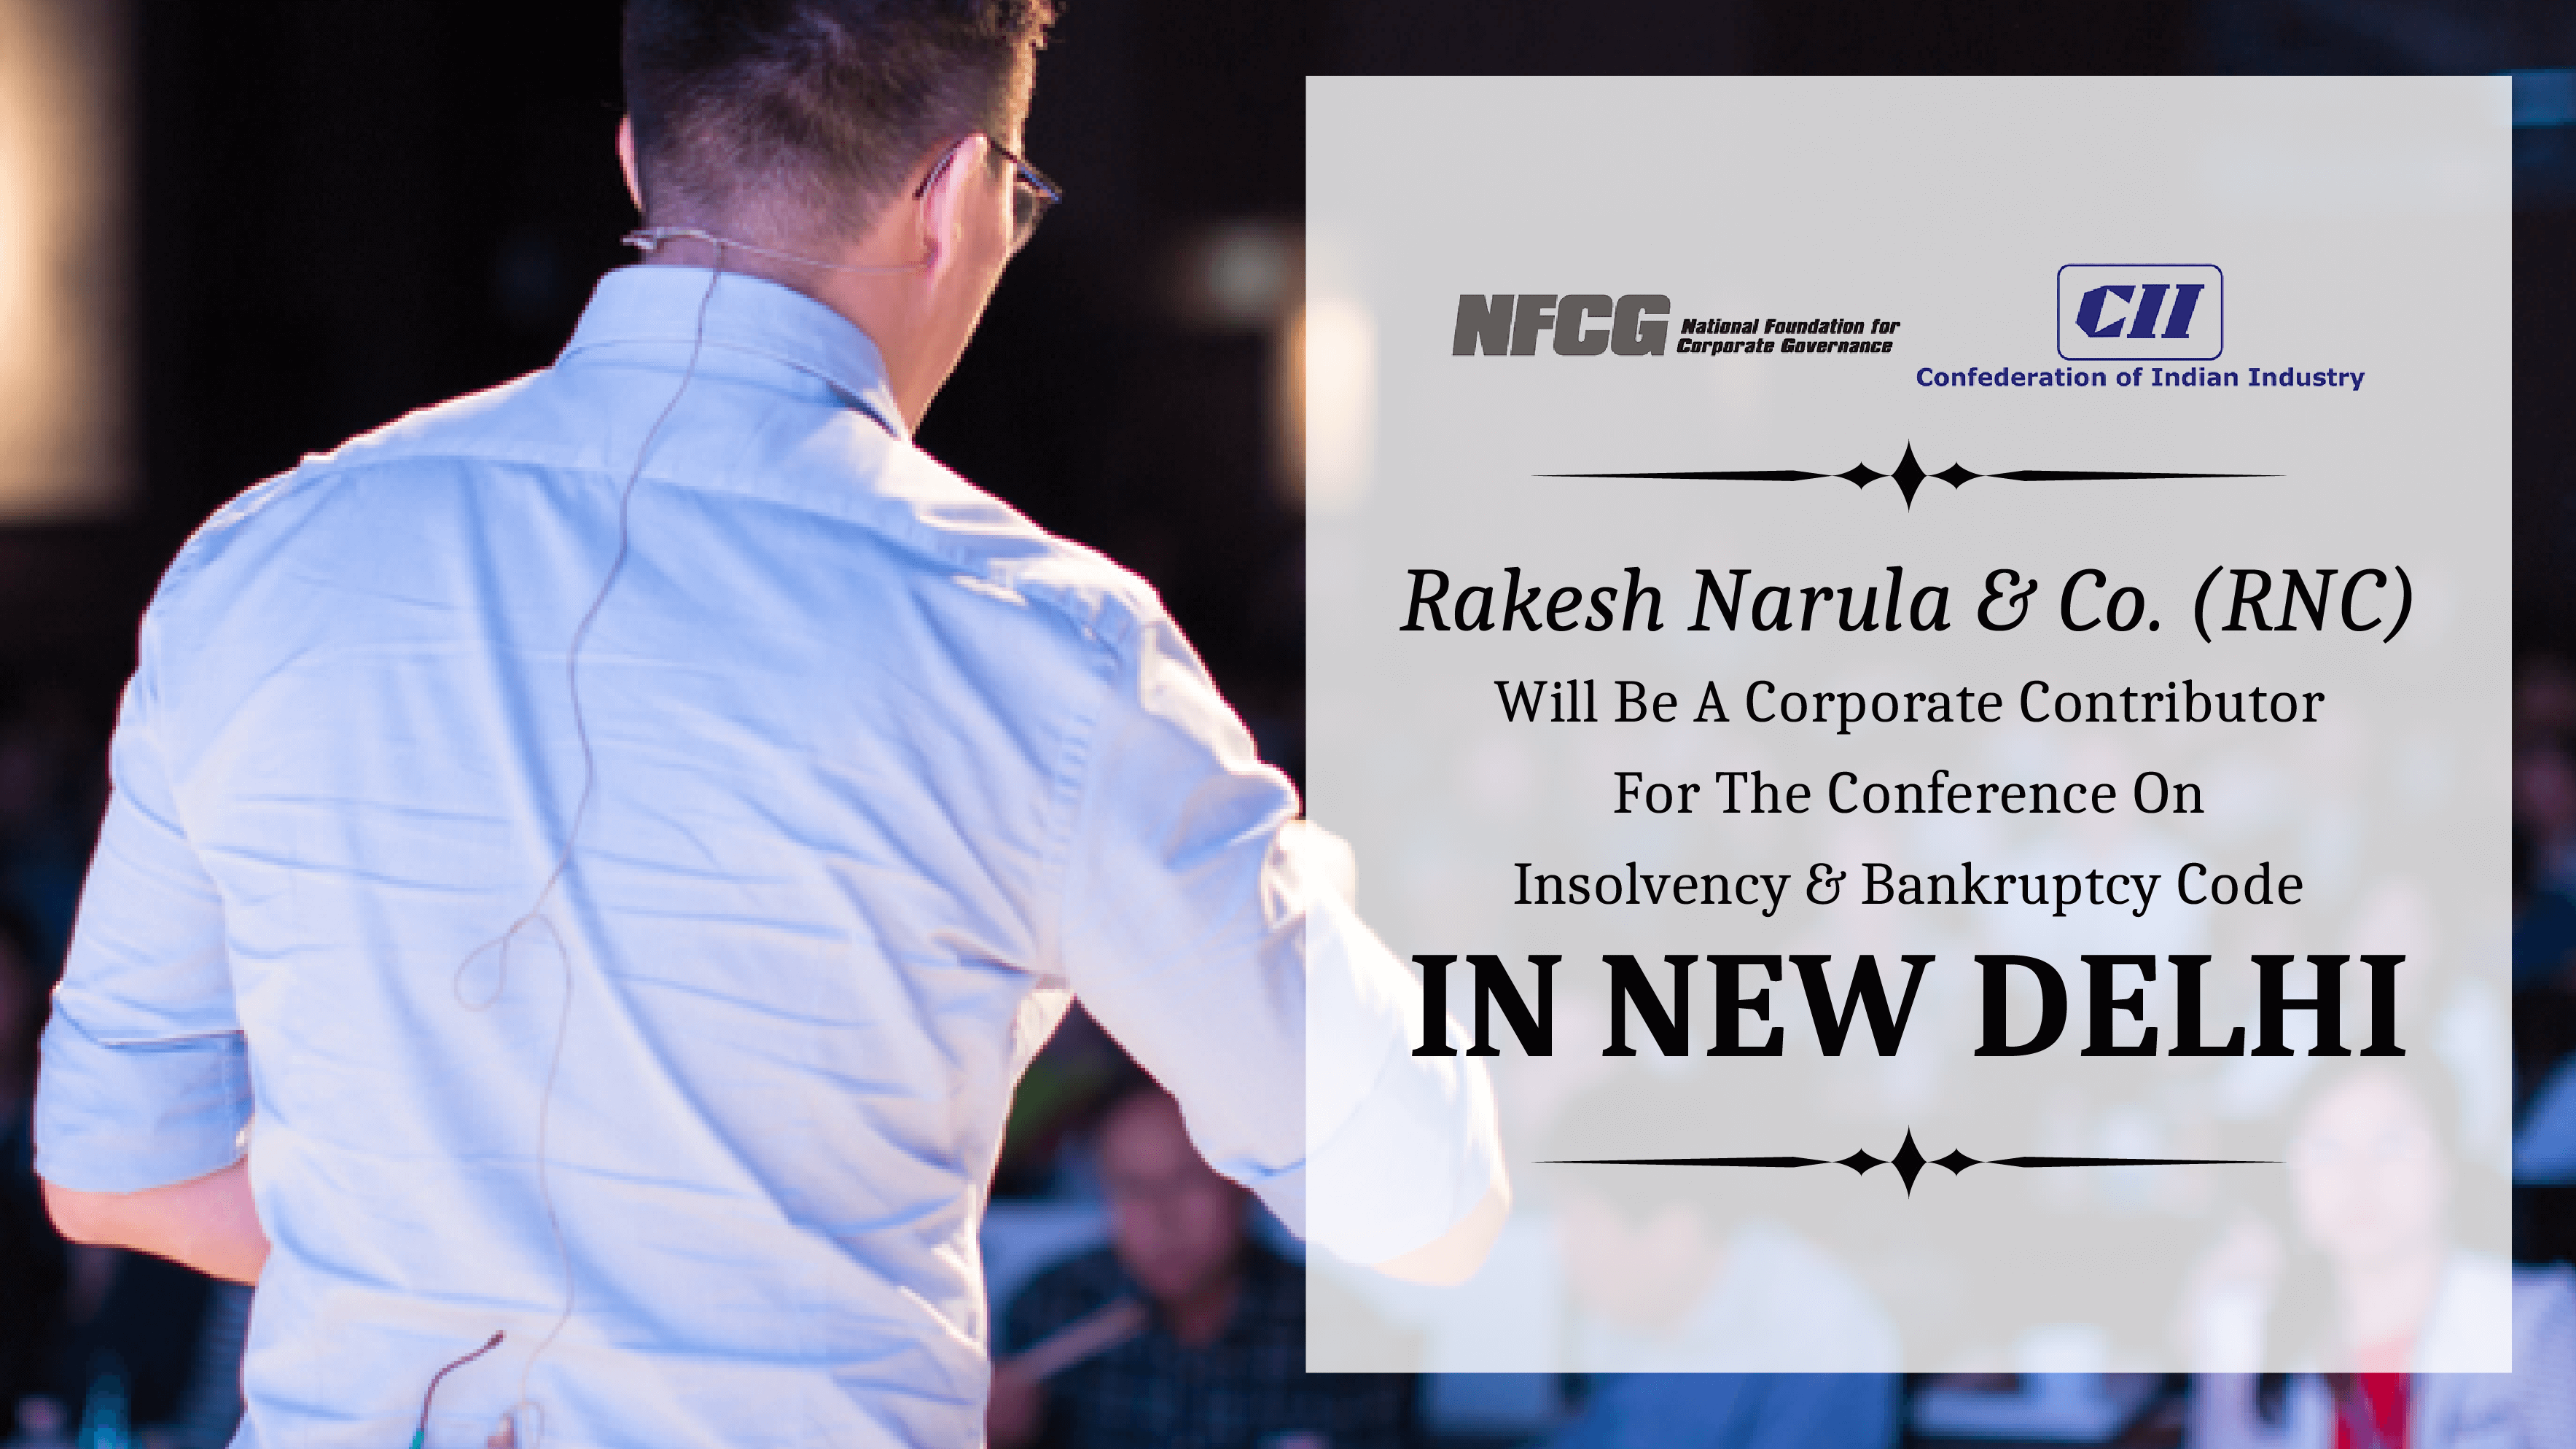 Rakesh Narula and Co. (RNC) Will Be A Corporate Contributor For The Conference on Insolvency and Bankruptcy Code In New Delhi